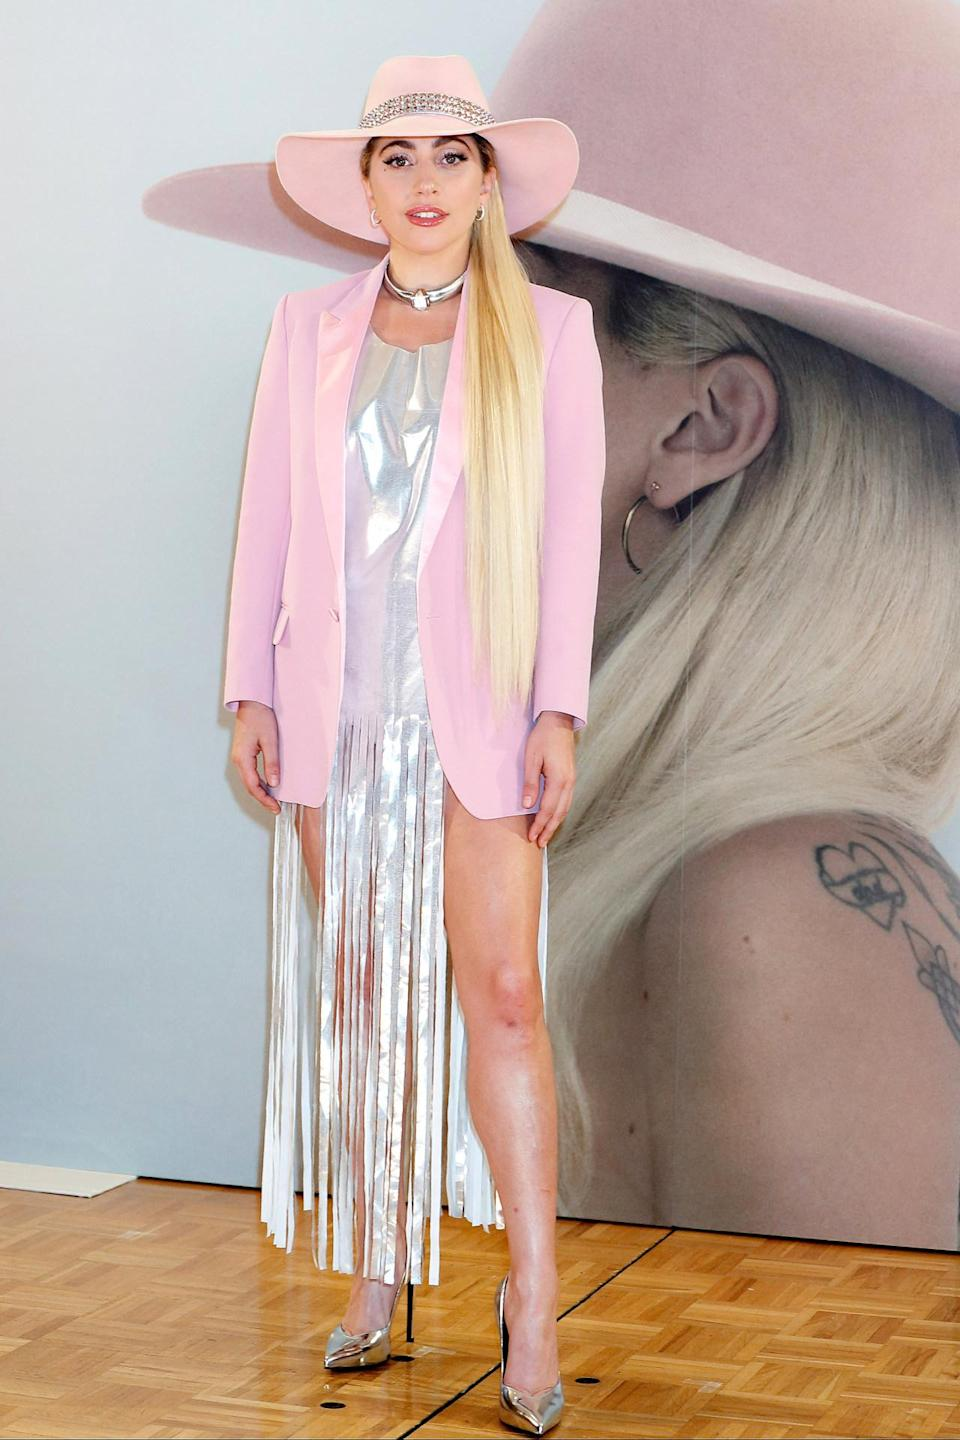 <p>For a photocall in Japan to promote her new album, Gaga showed up wearing a silver T-shirt with strategically-placed fringe detailing, combined with a pink blazer and her go-to pink fedora. <i>(Photo by Splash News)</i></p>